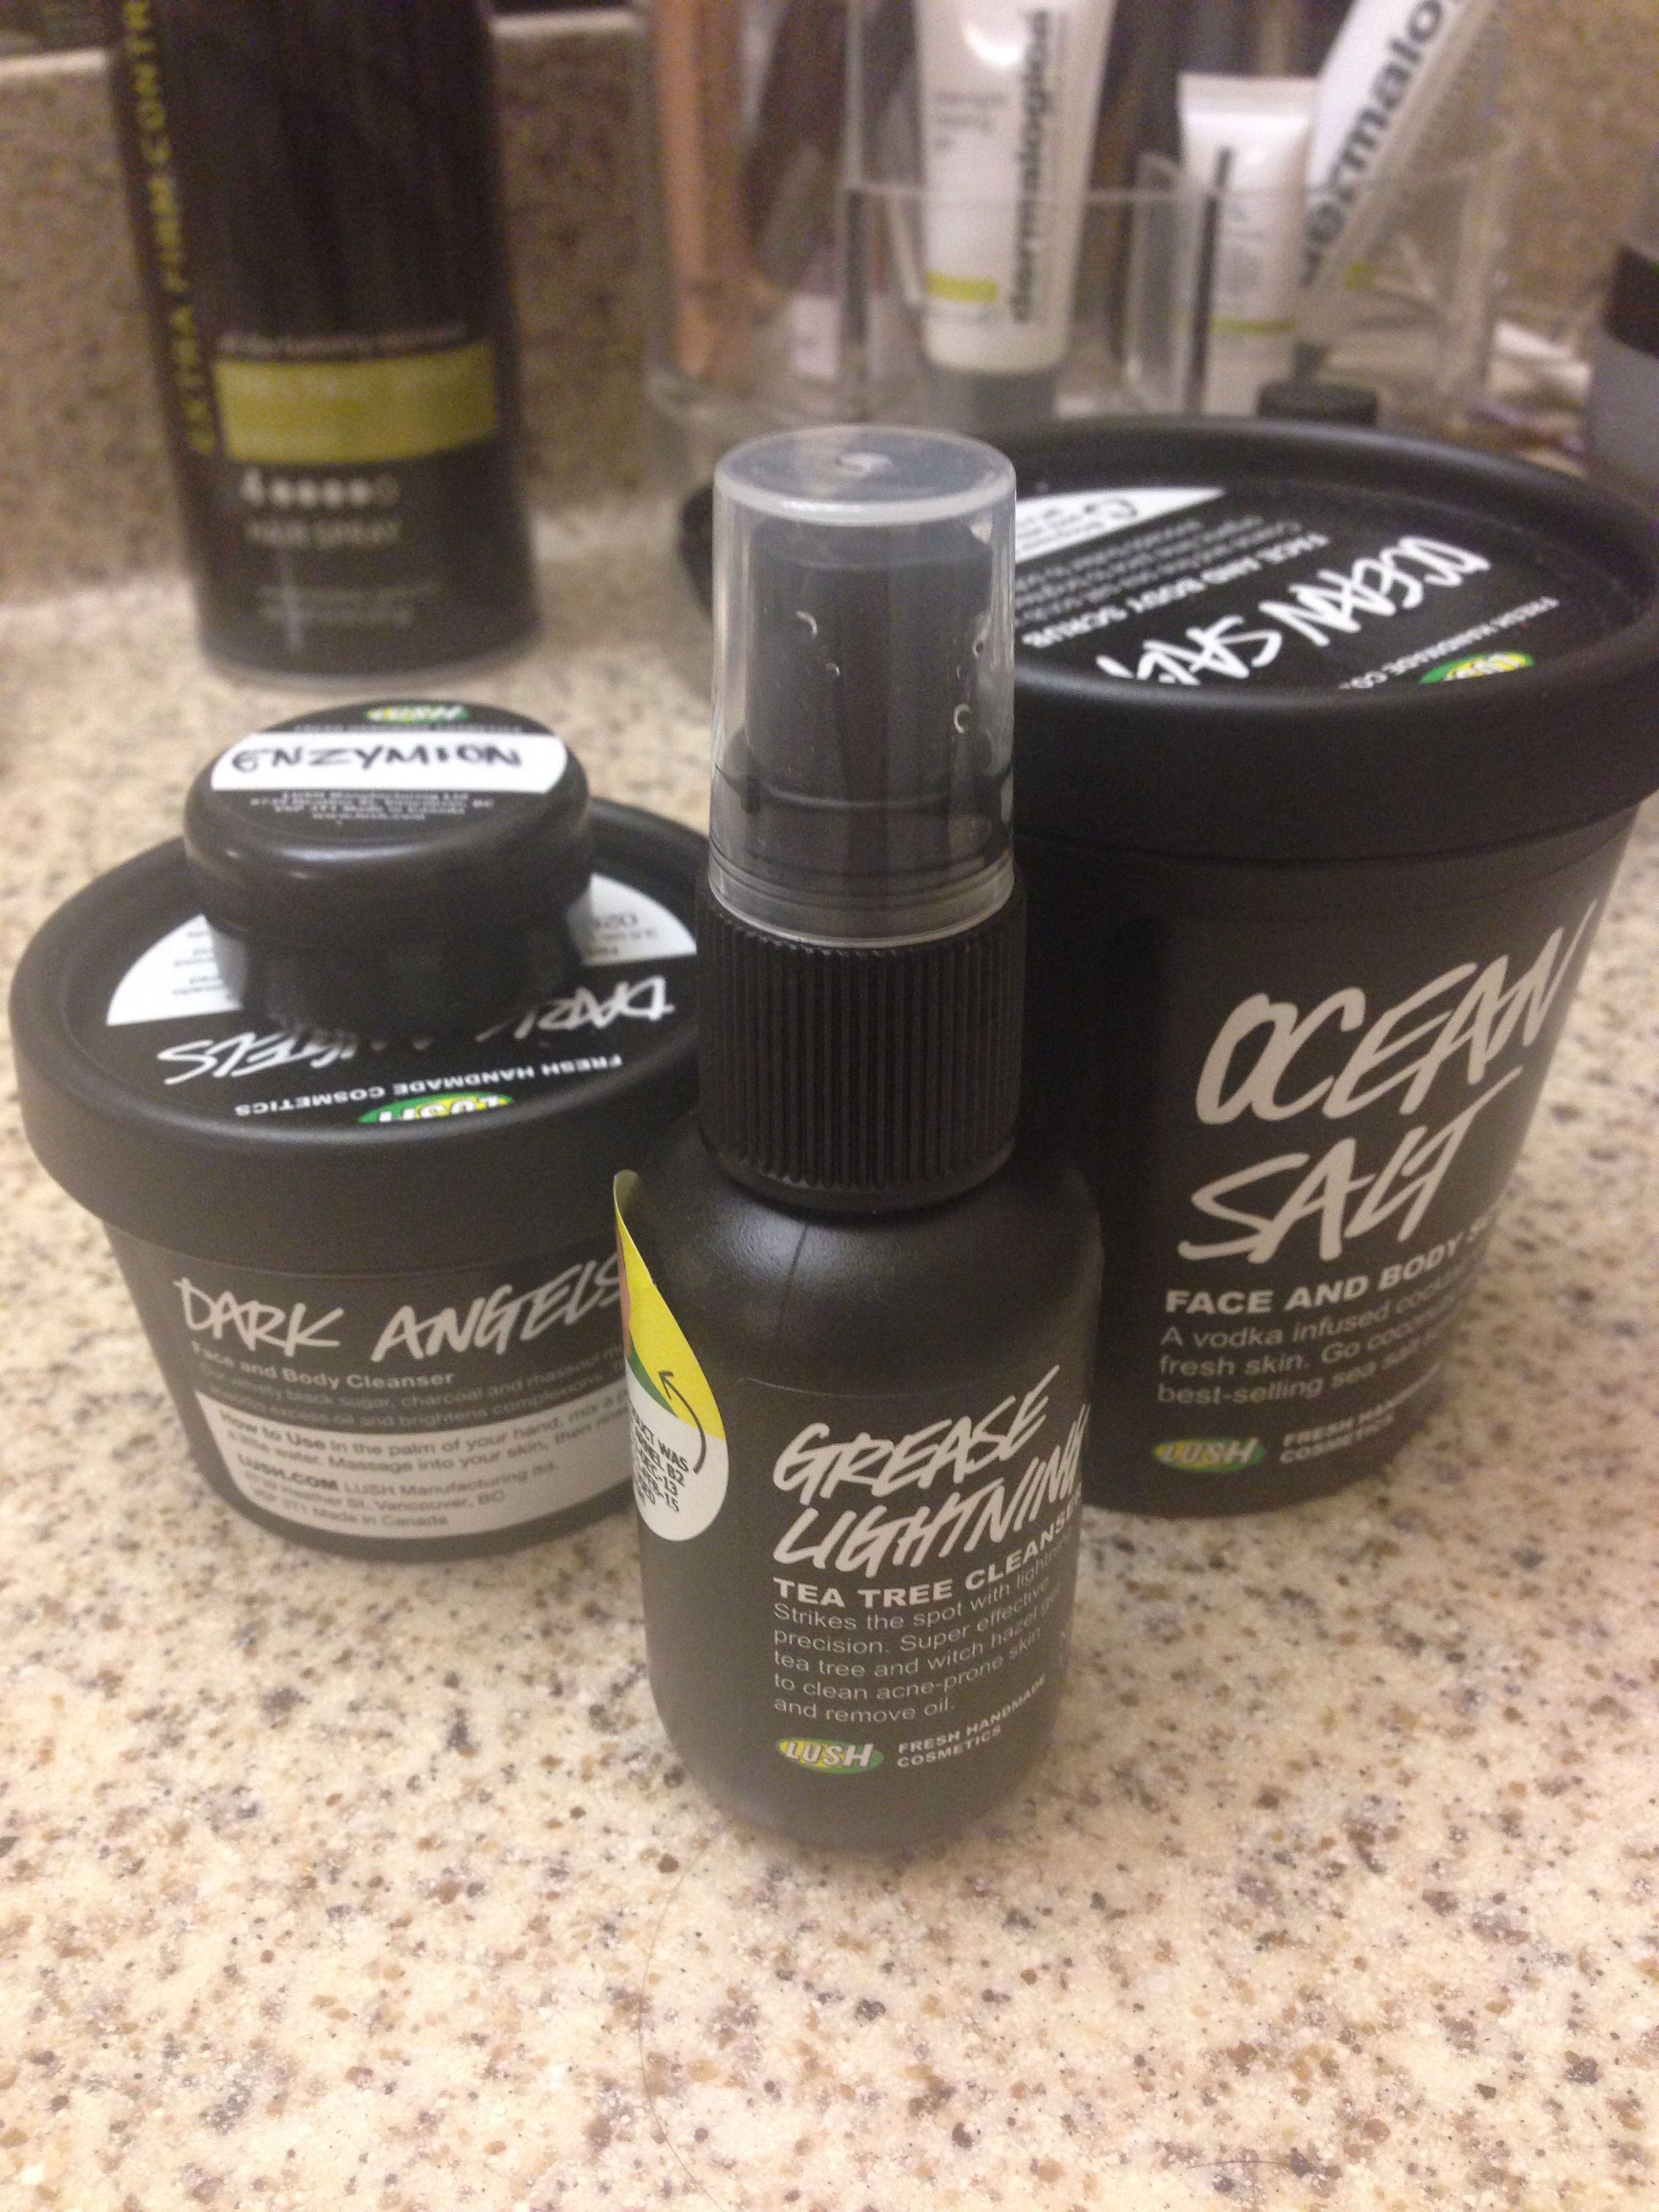 Lush Products I Have Been Using For My Oily Hormonal Acne That Viva Lotion 30ml Recently Got Cleared And Leaves Face Soft All Natural Ingredients